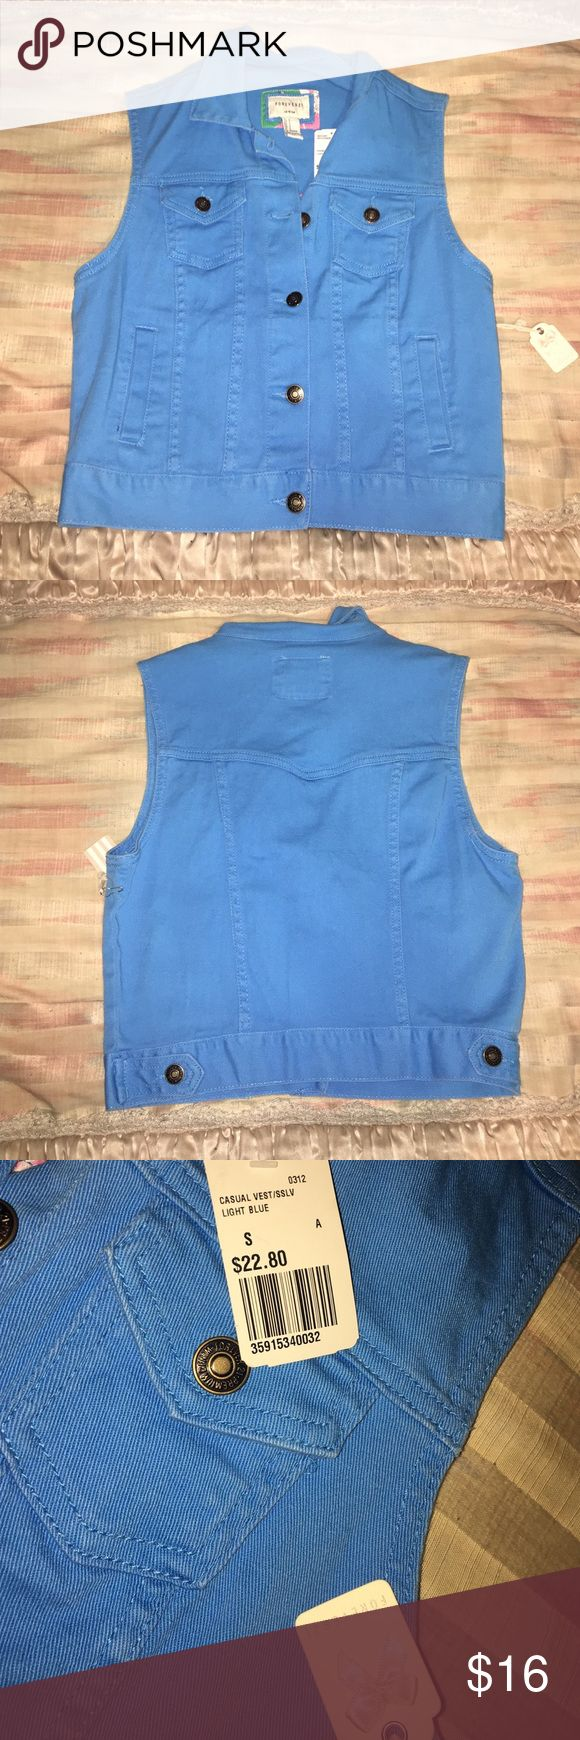 Bright blue vest! Bright blue vest. Never worn. Very cute and stylish. Forever 21 Jackets & Coats Vests